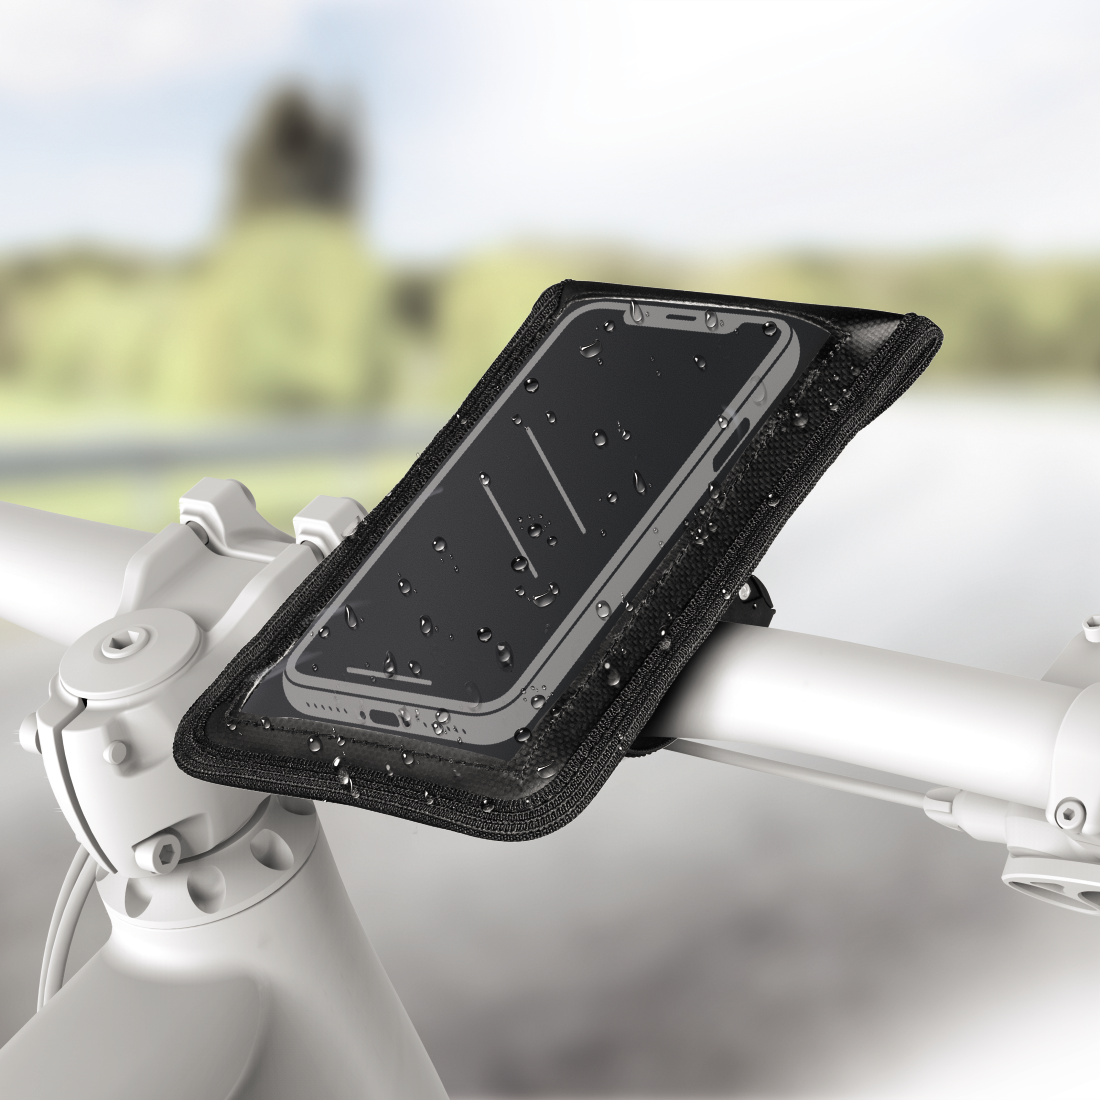 abx High-Res Image - Hama, Univer. Smartphone Bike Holder Bag for devices with width from 7 to 13.5 cm